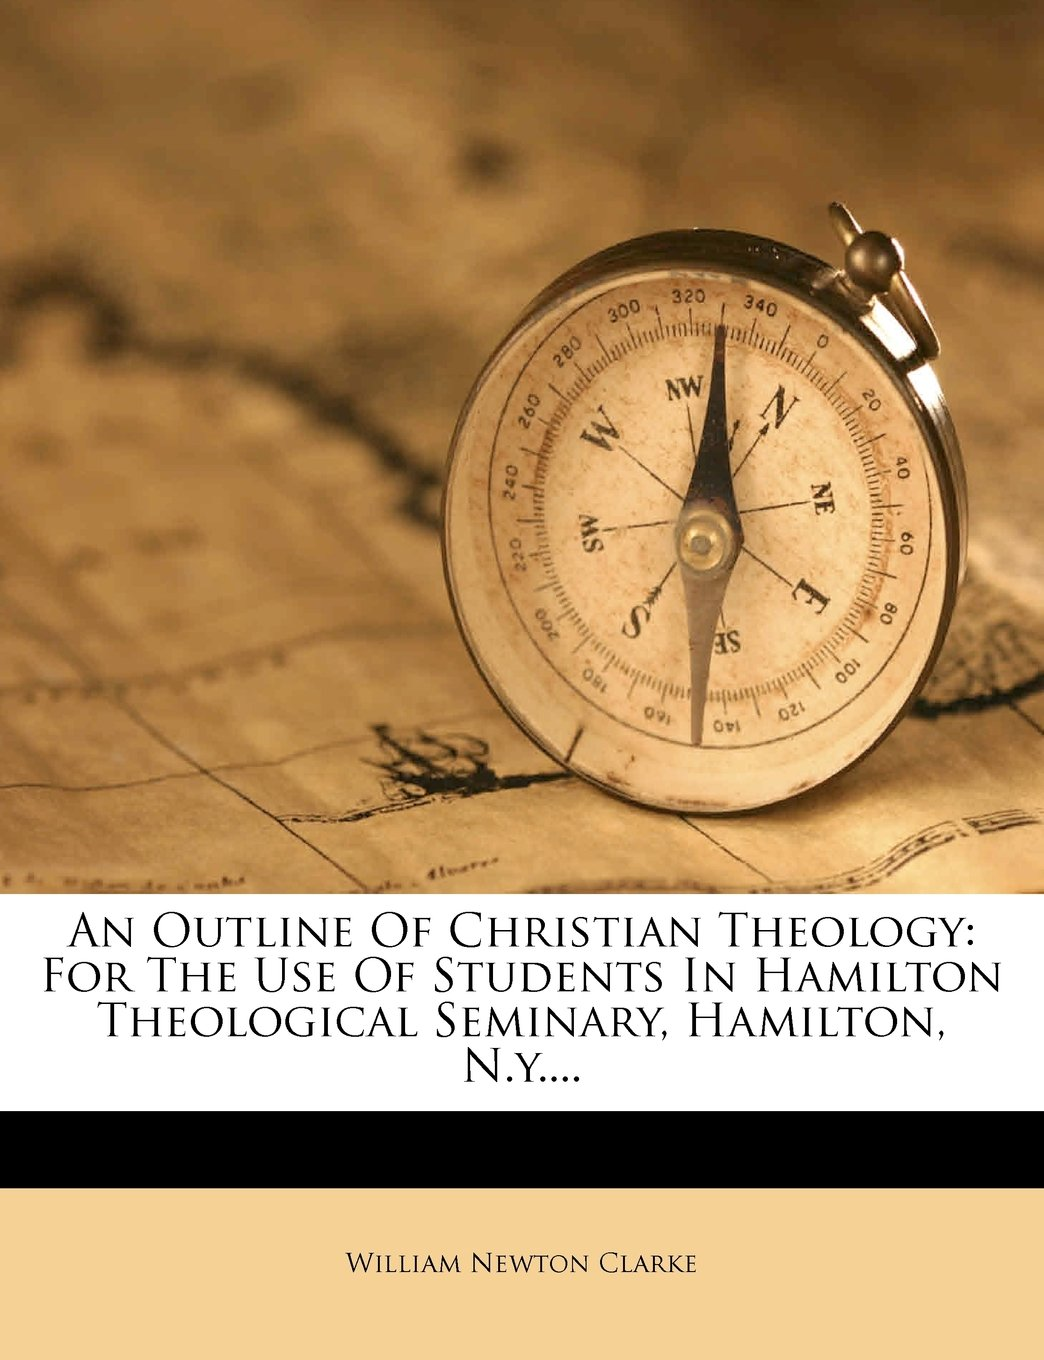 Read Online An Outline Of Christian Theology: For The Use Of Students In Hamilton Theological Seminary, Hamilton, N.y.... PDF Text fb2 ebook